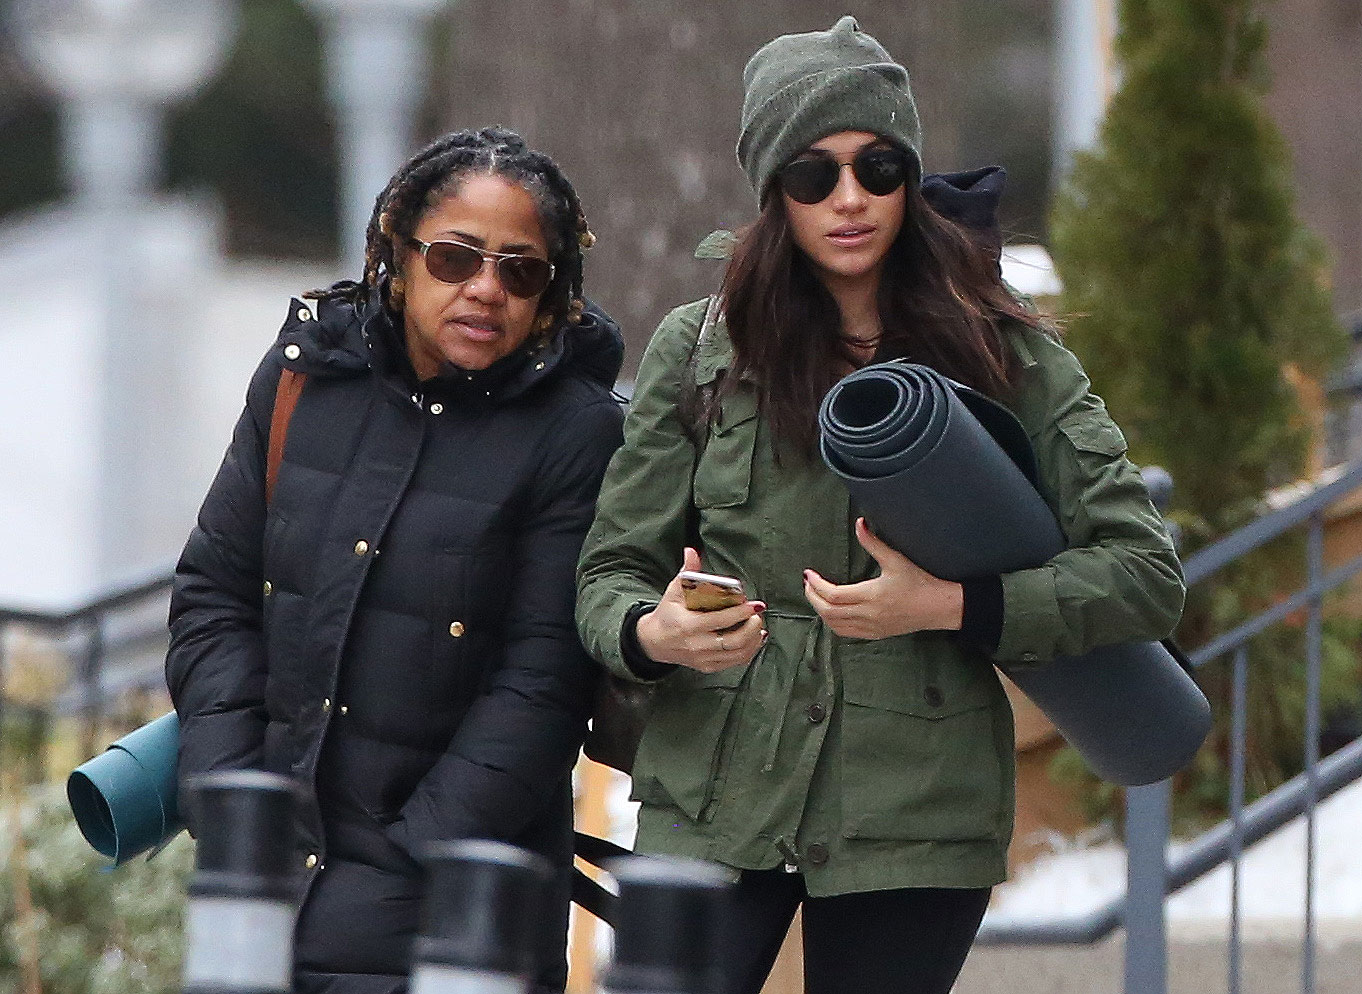 EXCLUSIVE: **NO WEB UNTIL 11PM PST, DEC 27TH 2016** Meghan Markle and her mom do Yoga together